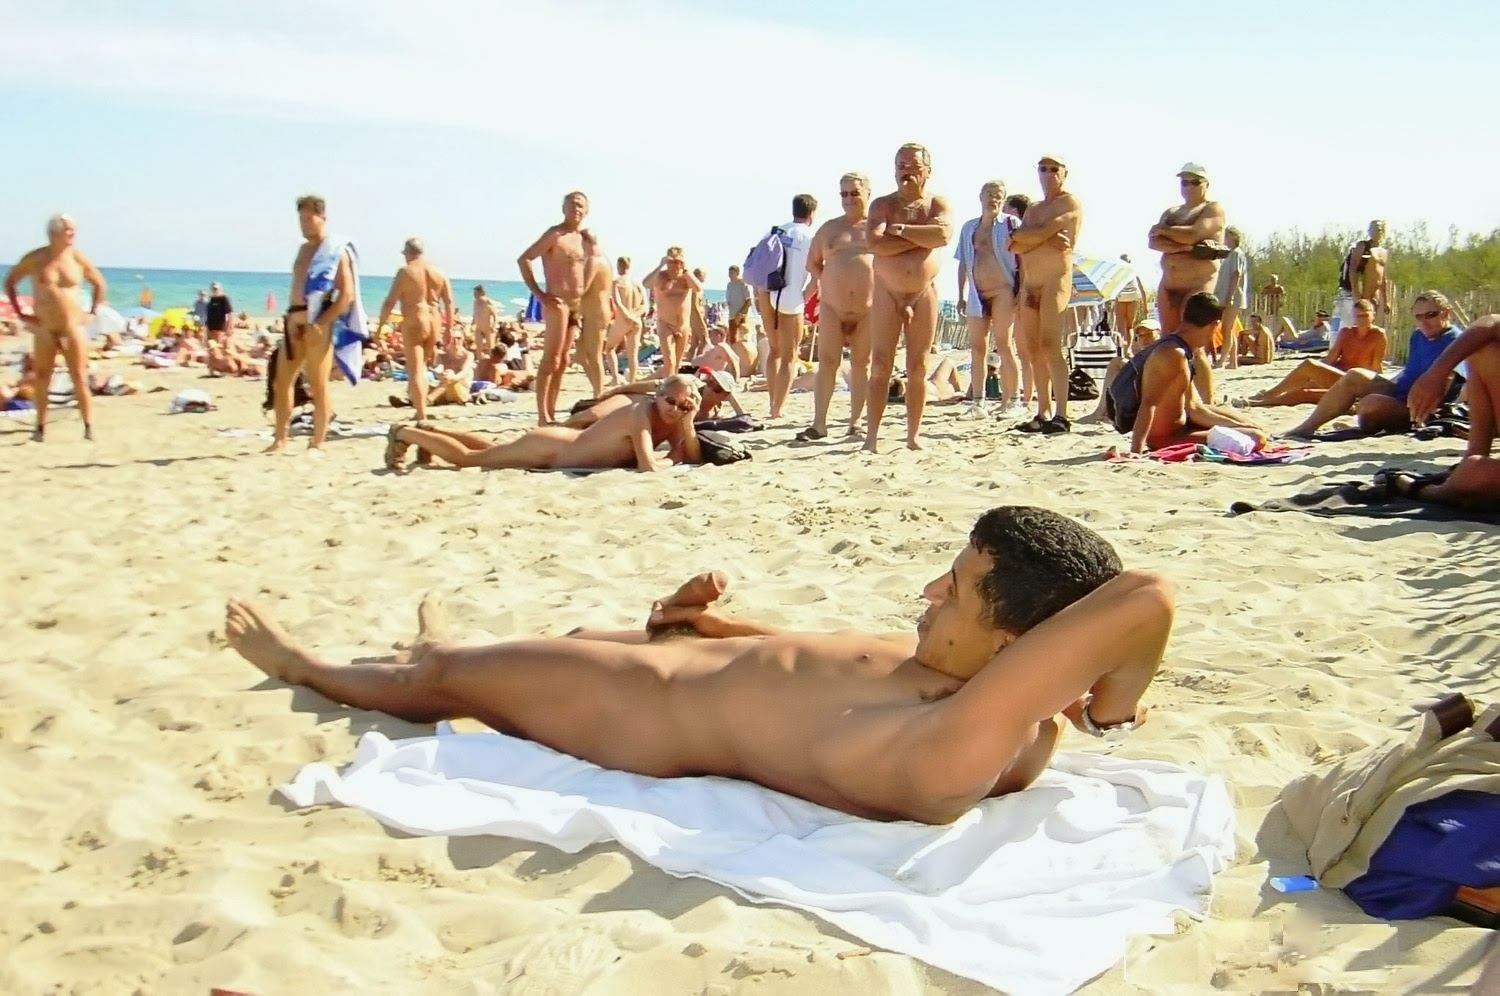 Gay Mans Pleasure Naked Men On The Beach-5431